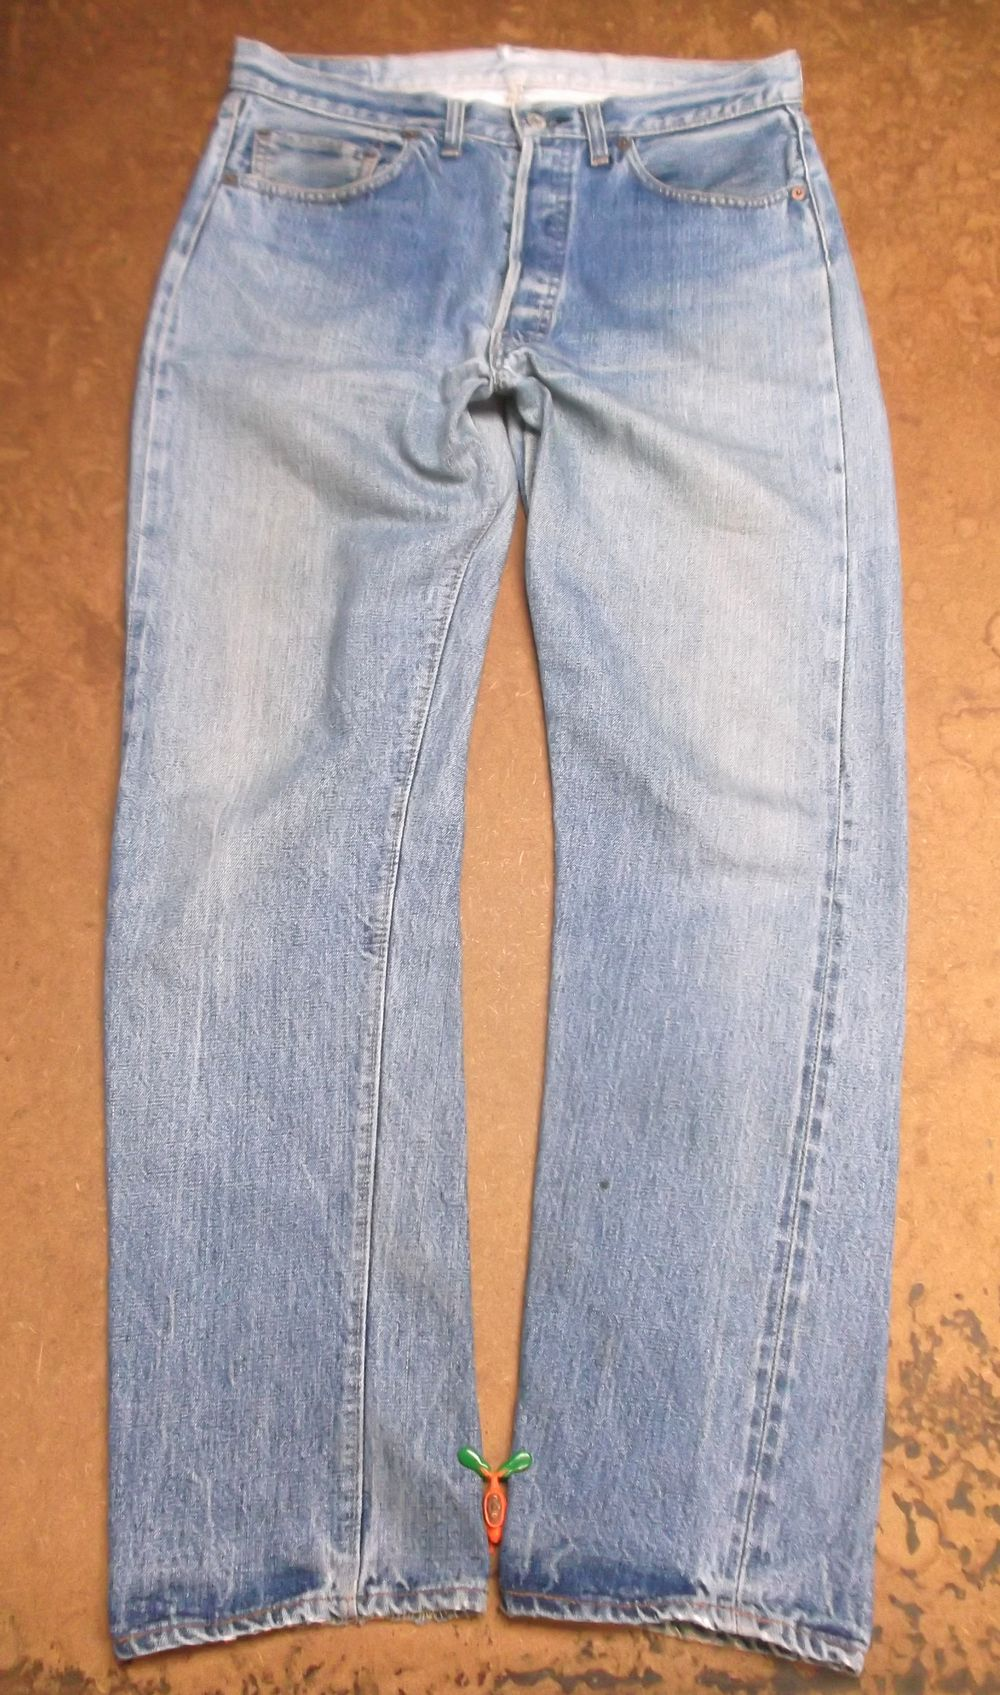 jeans1330-1